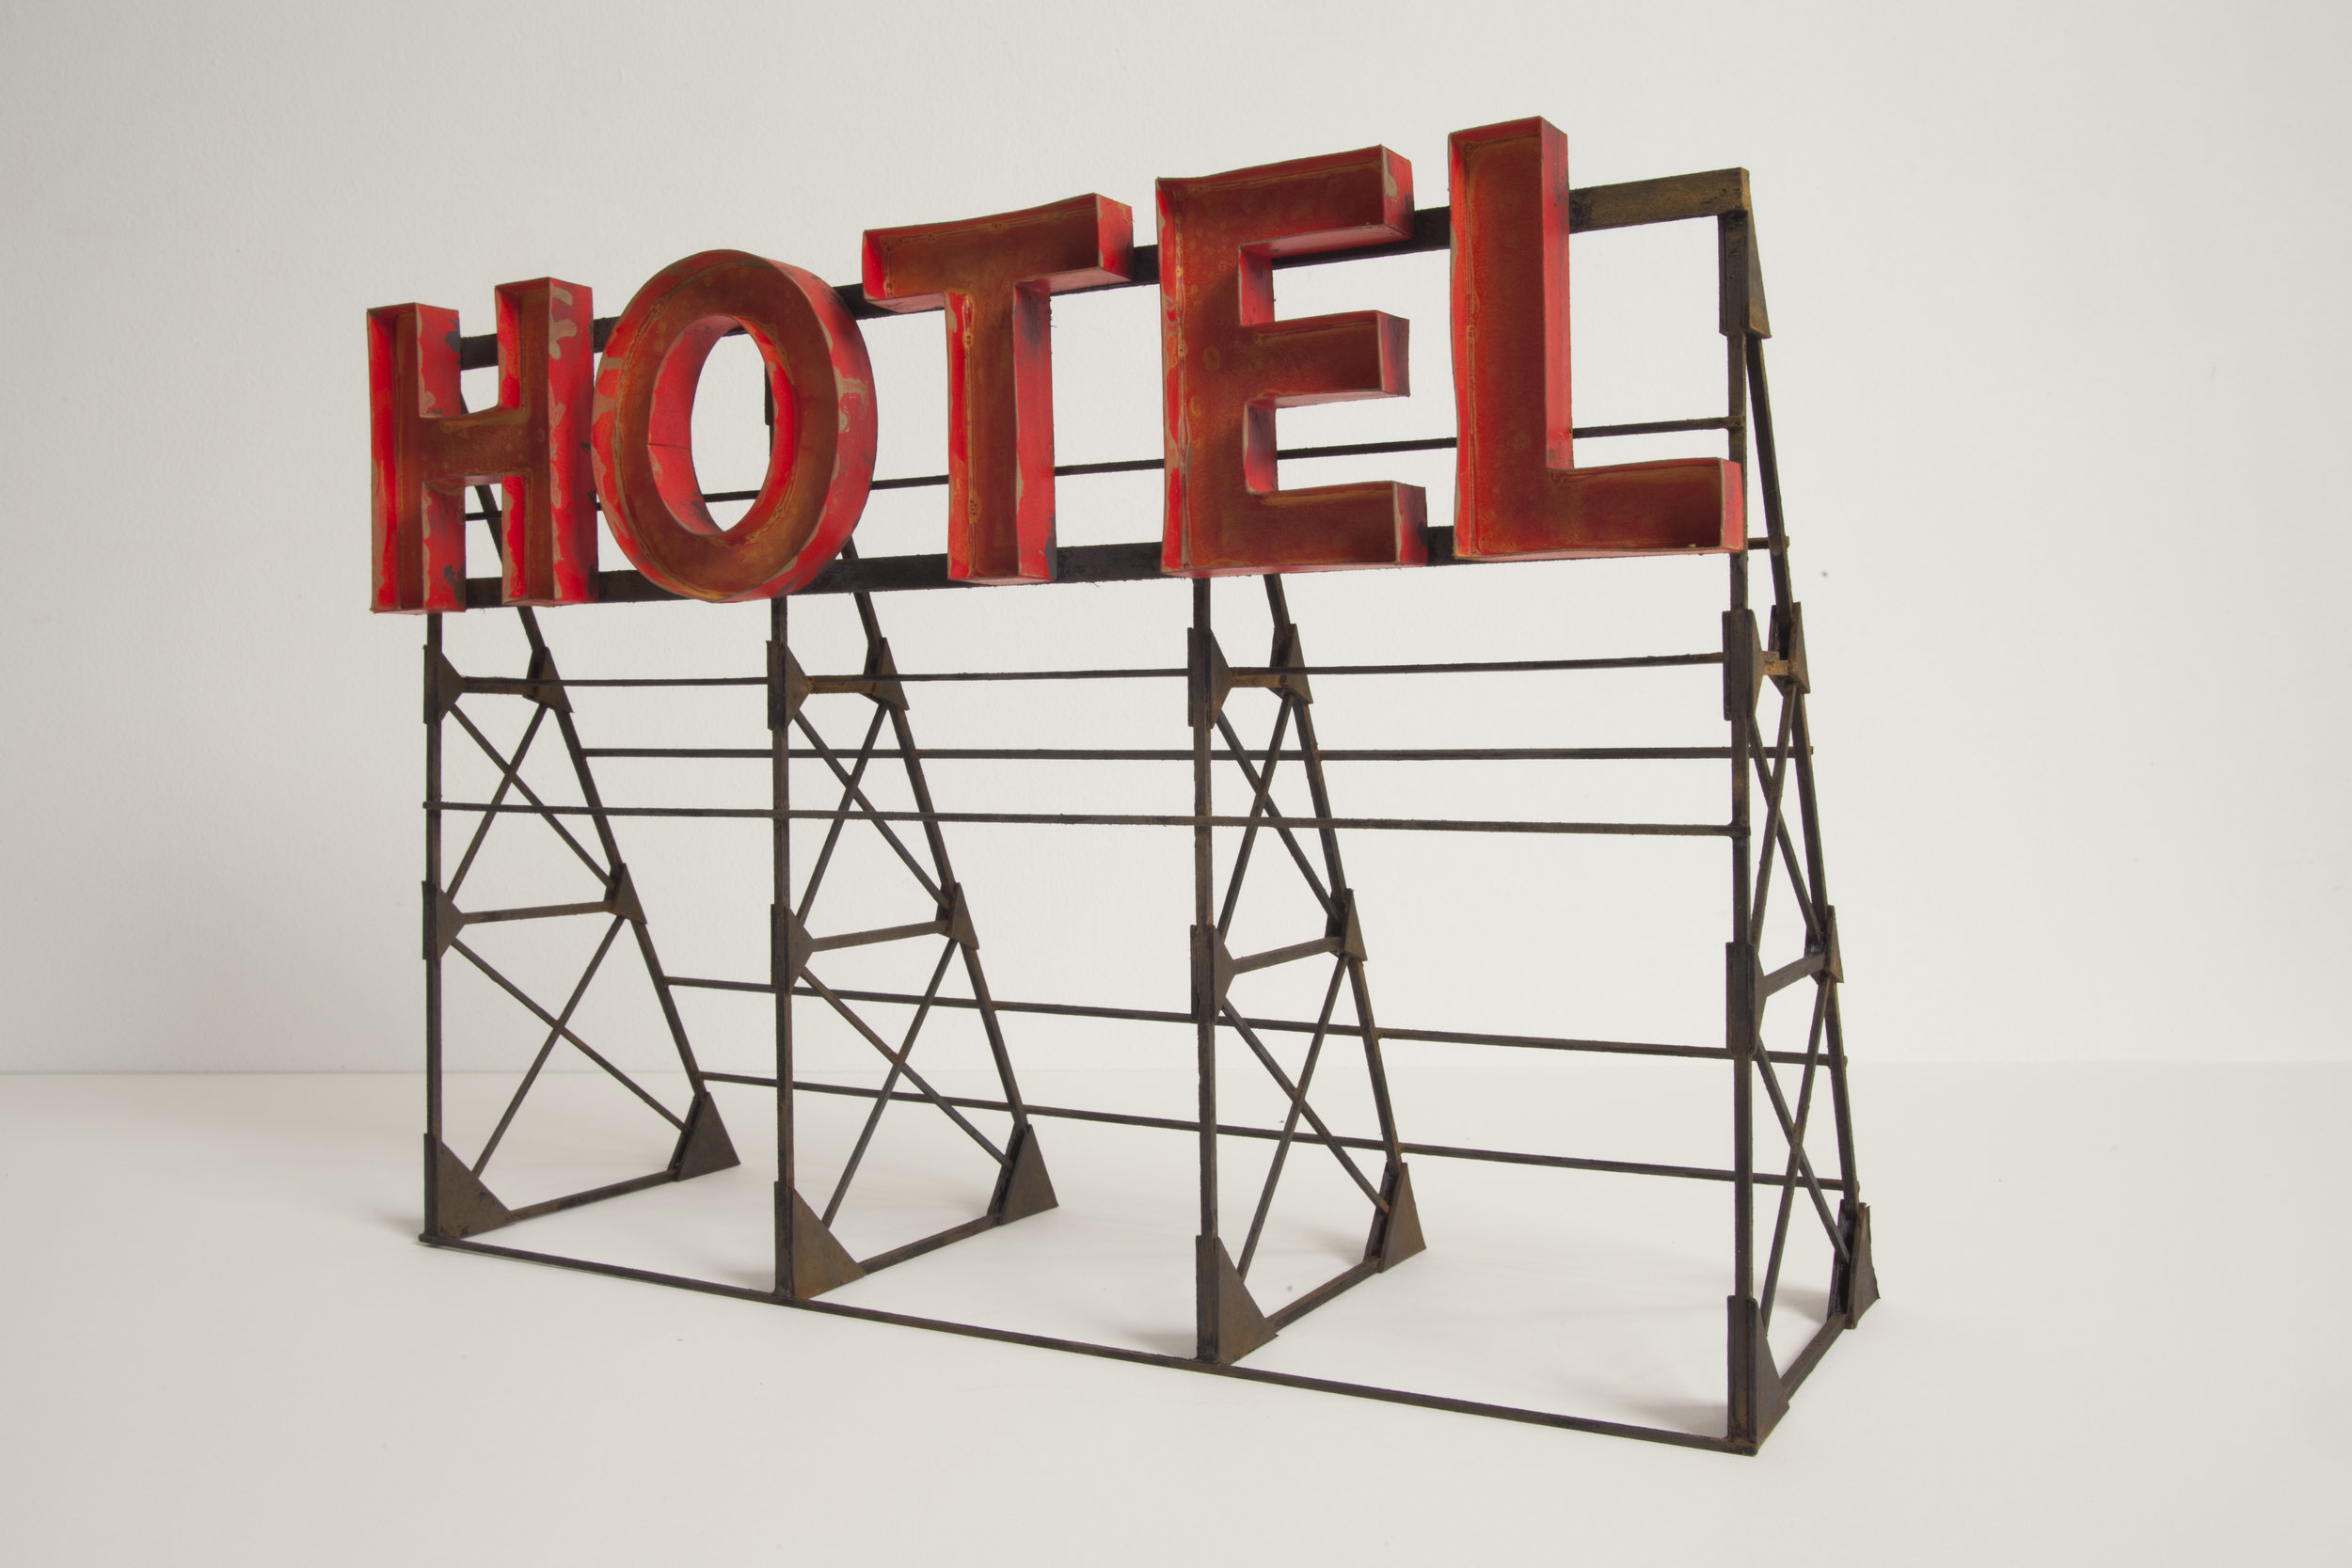 Hotel (Red) - SOLD